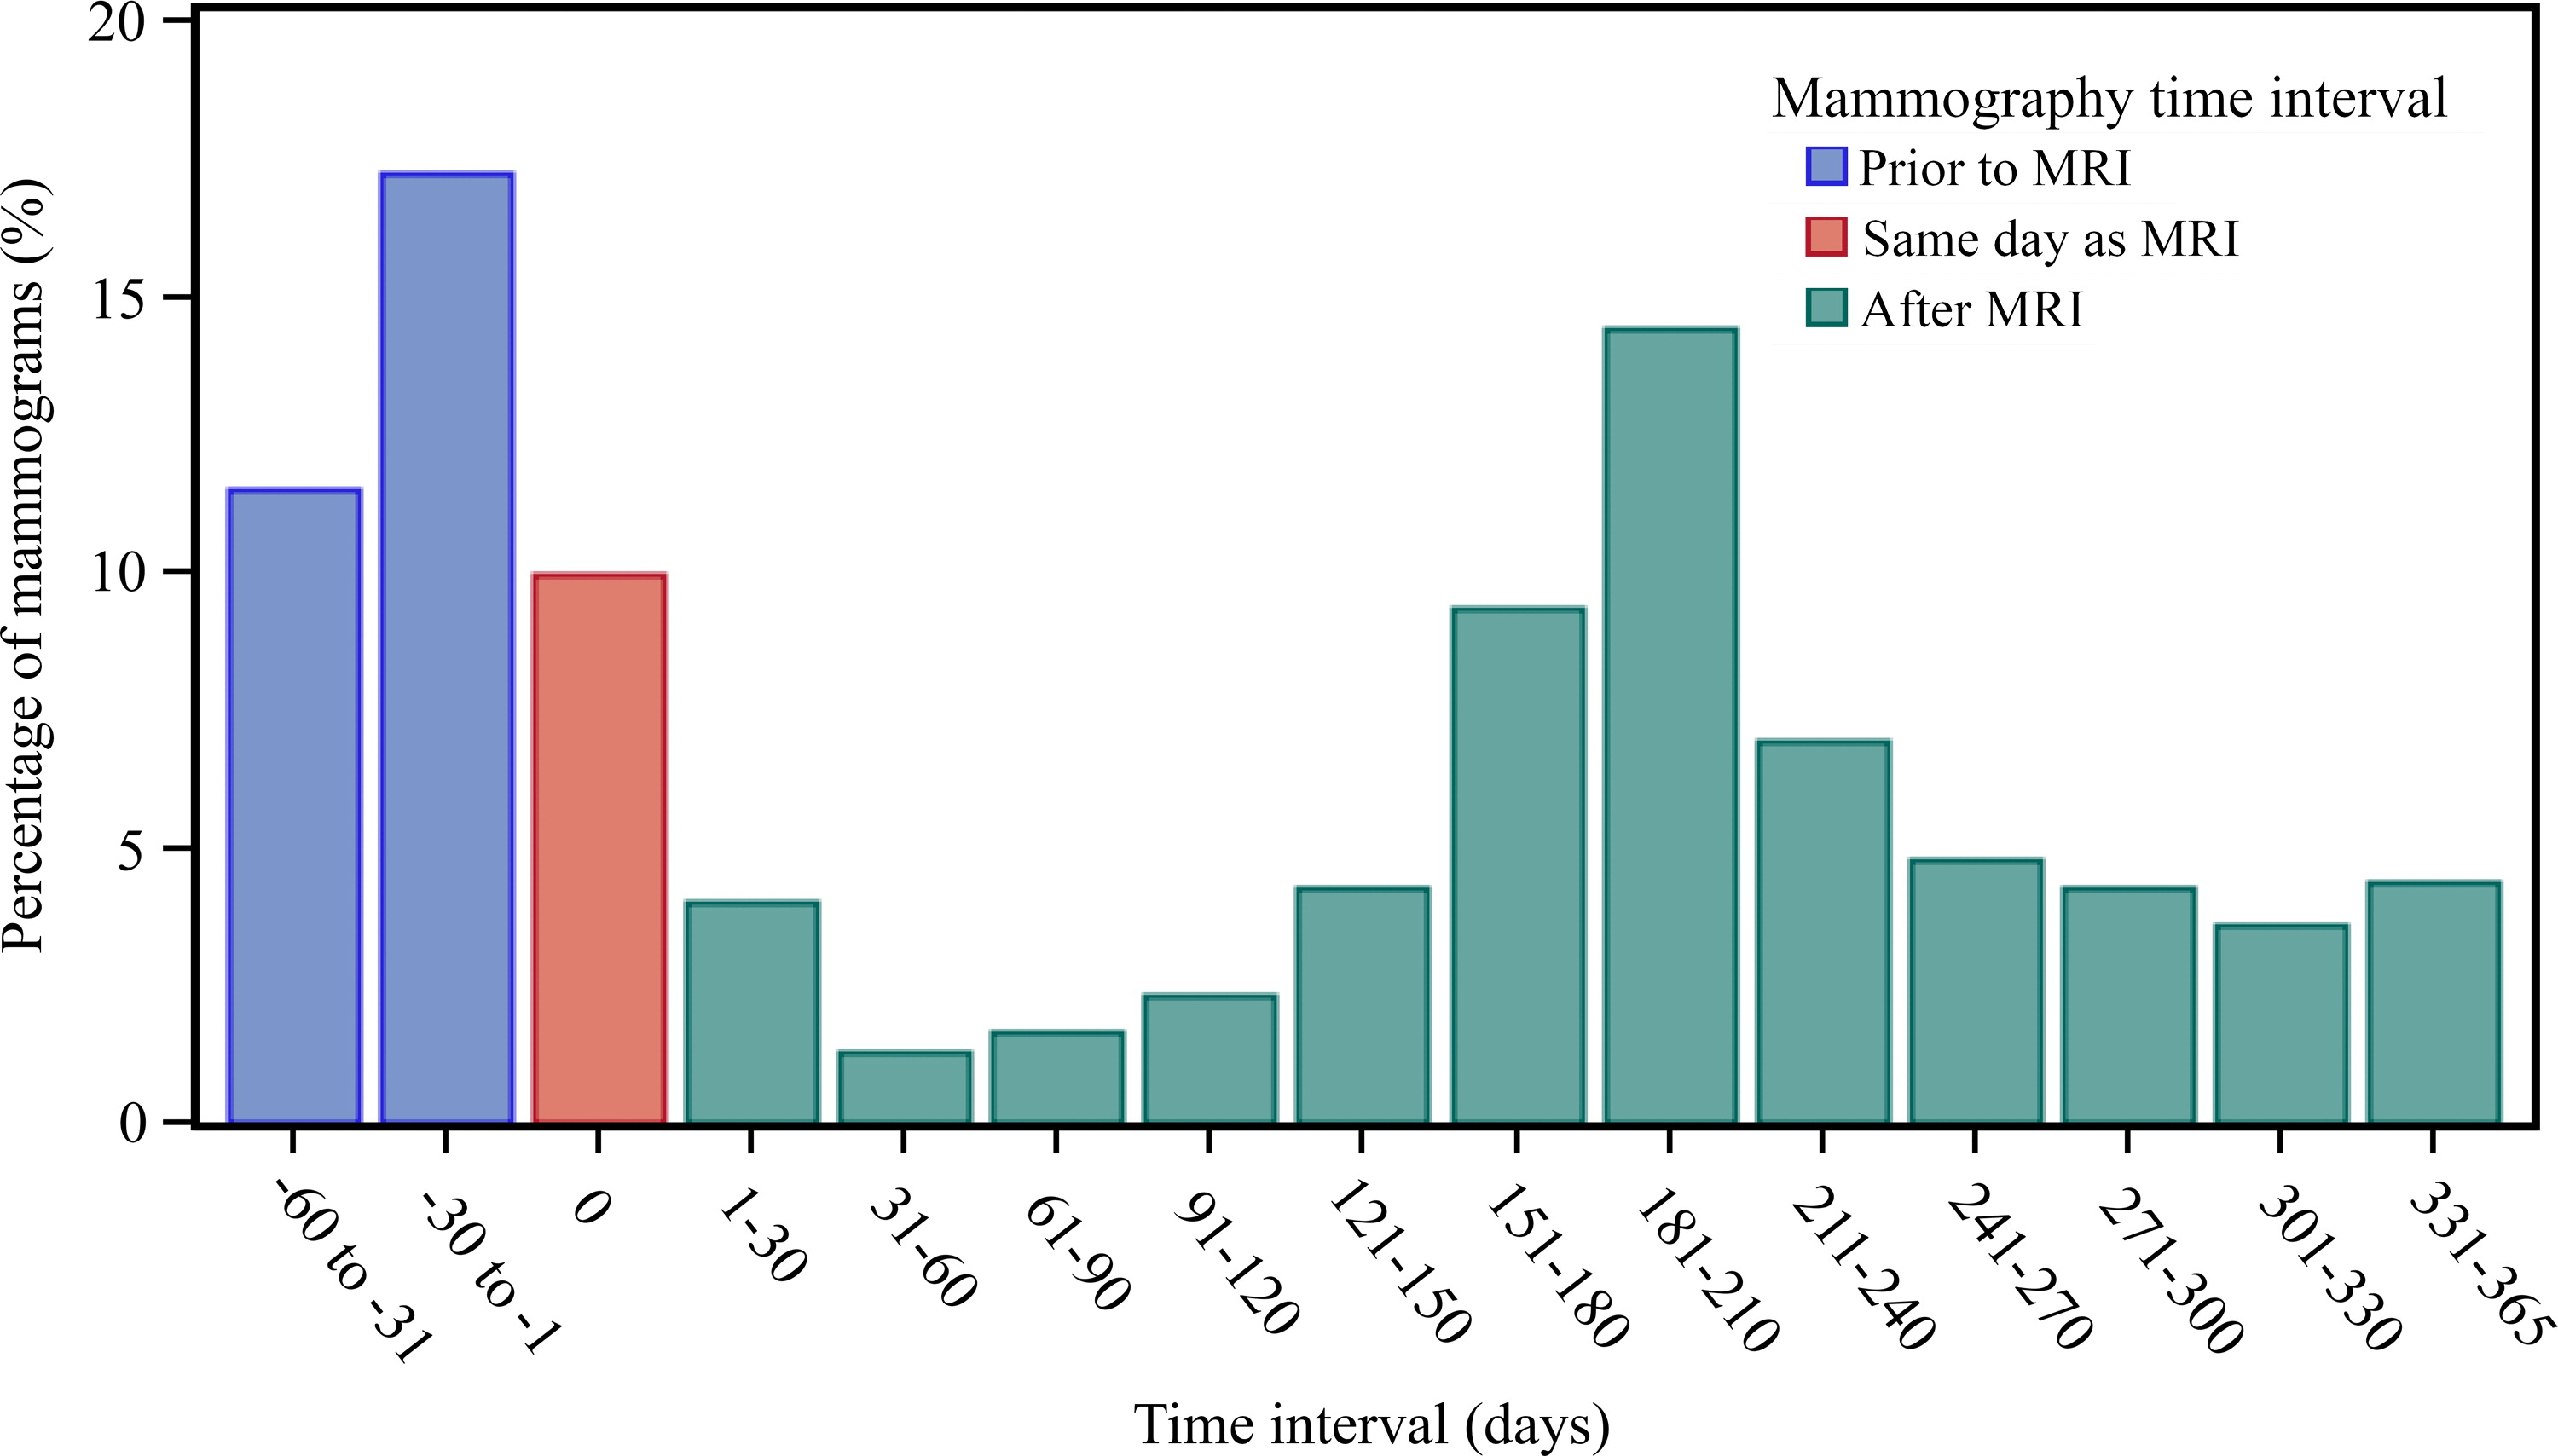 Us clinical practices meet or approach bi rads benchmarks for bar chart shows screening mammography frequency relative to screening mr imaging distribution of time in 30 day increments between screening mr xflitez Gallery